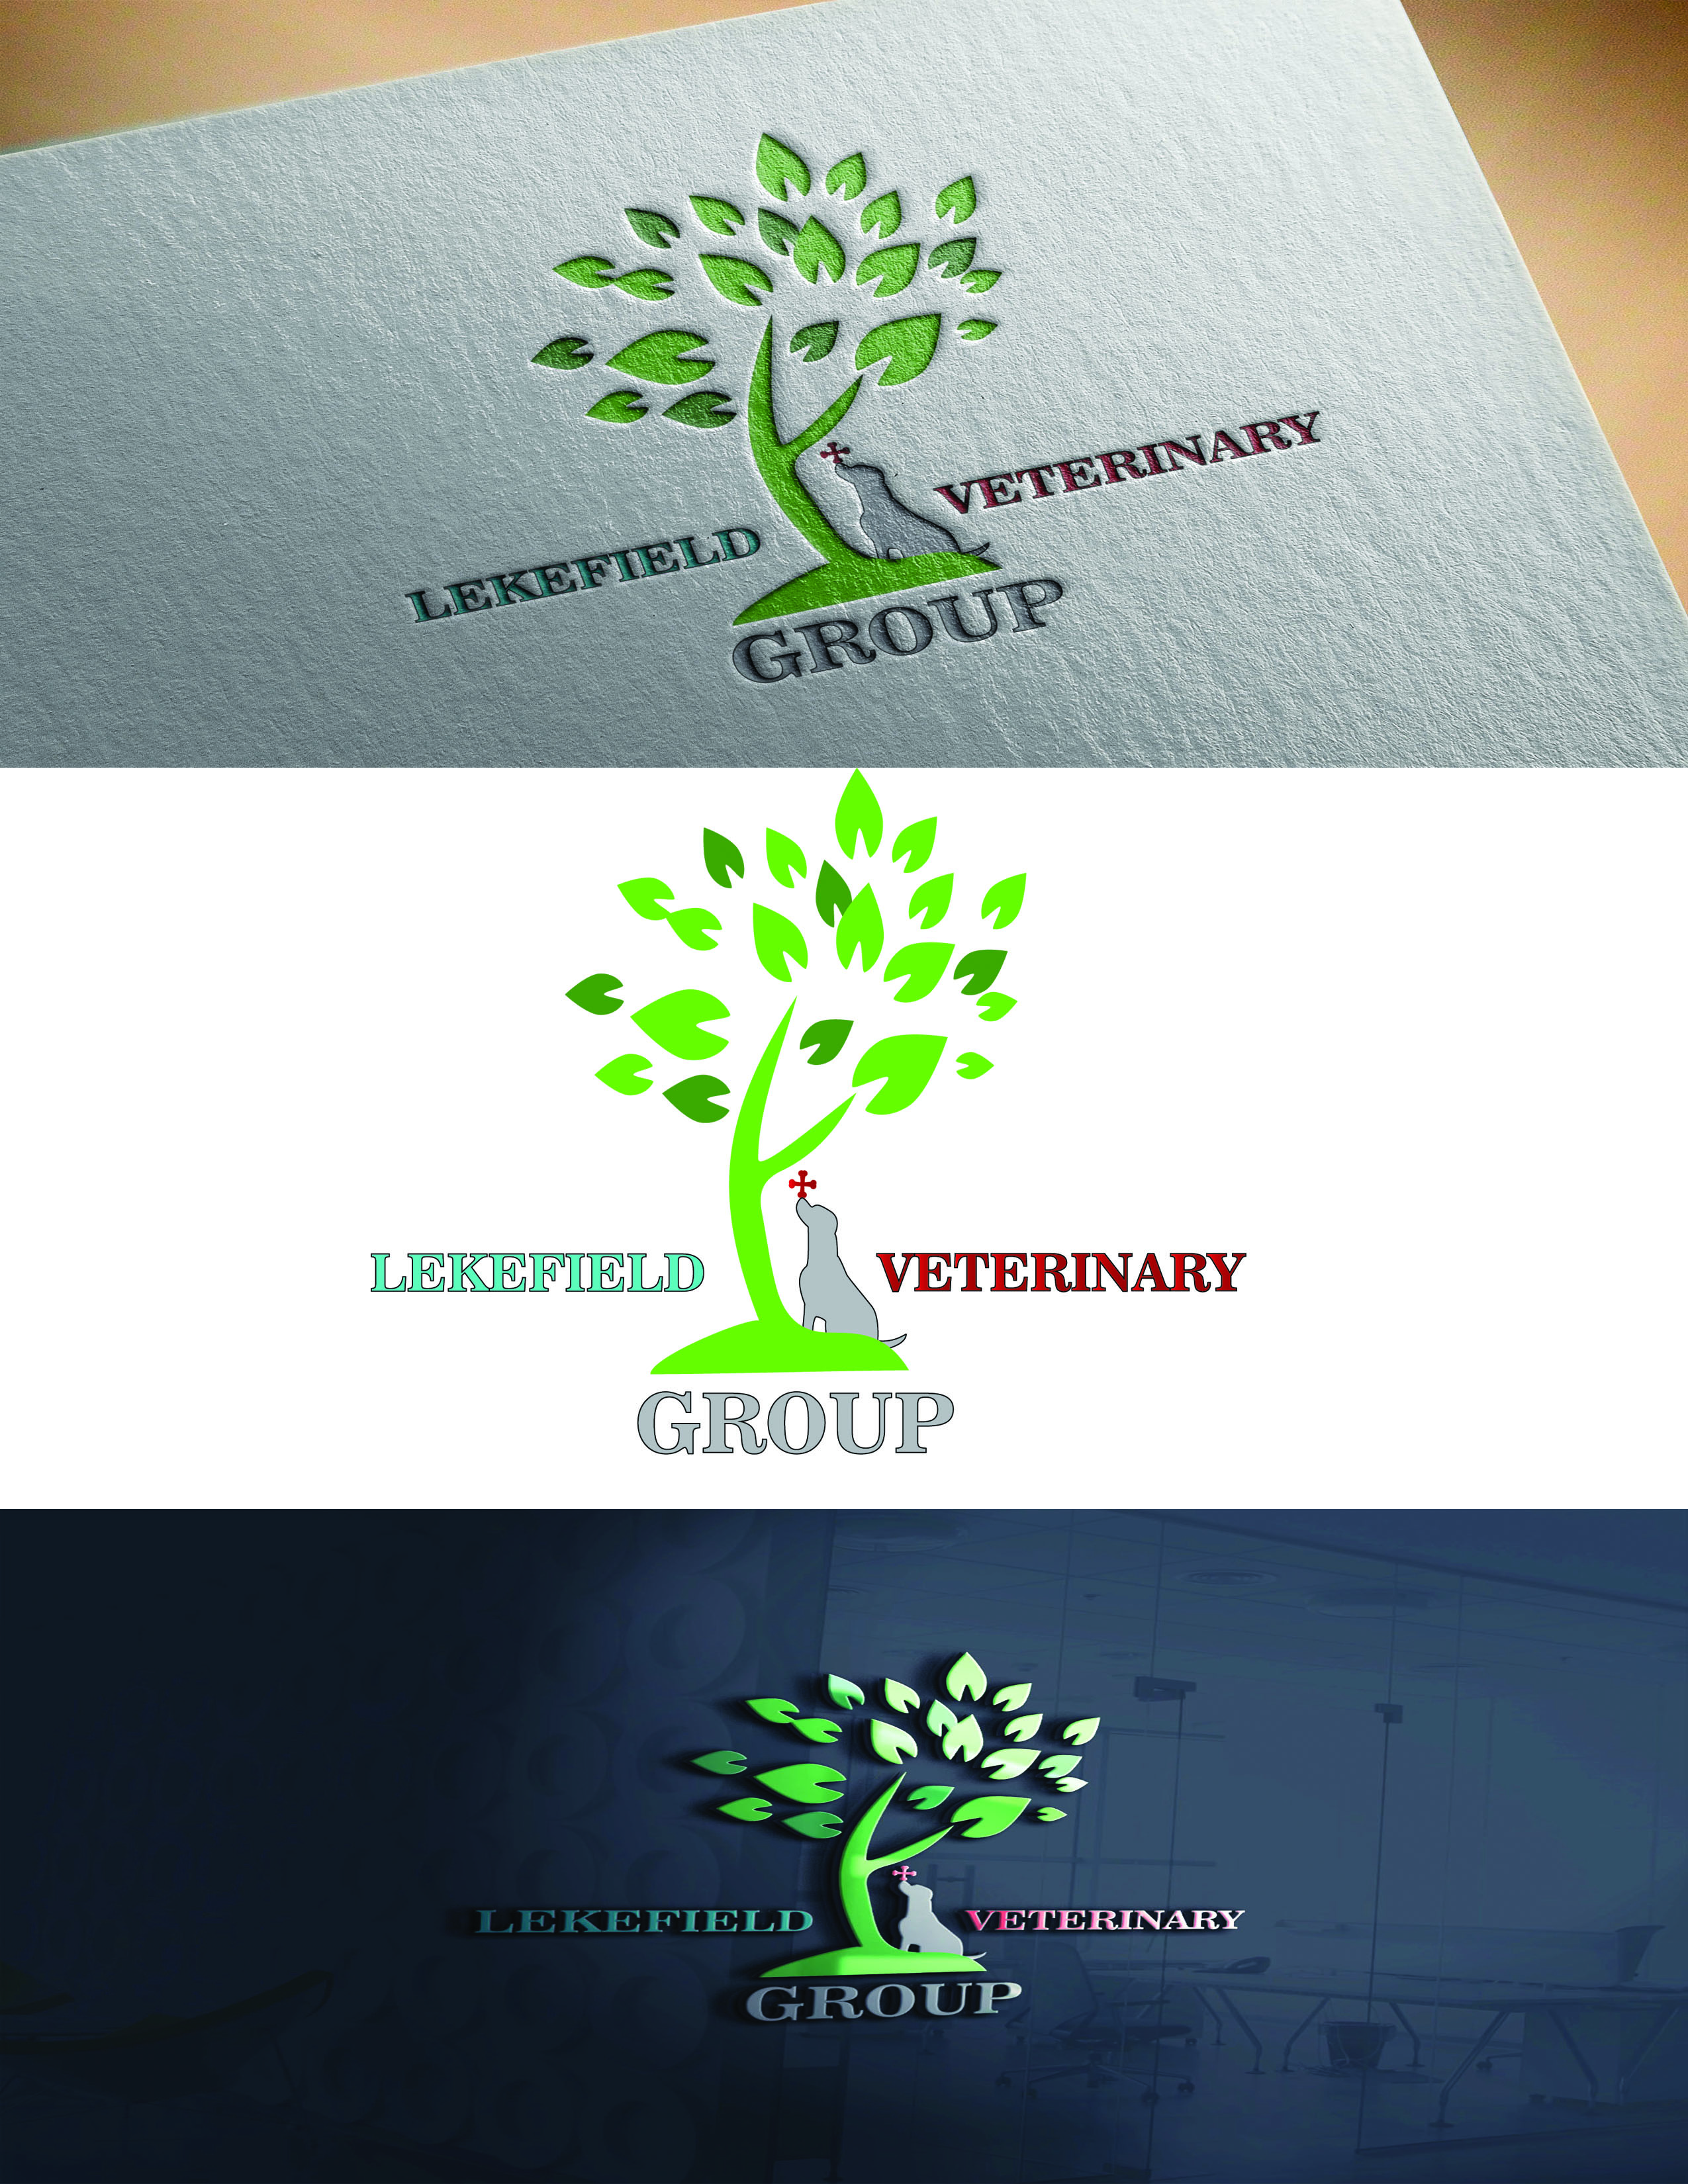 Logo Design by Umair ahmed Iqbal - Entry No. 41 in the Logo Design Contest Inspiring Logo Design for Lakefield Veterinary Group.